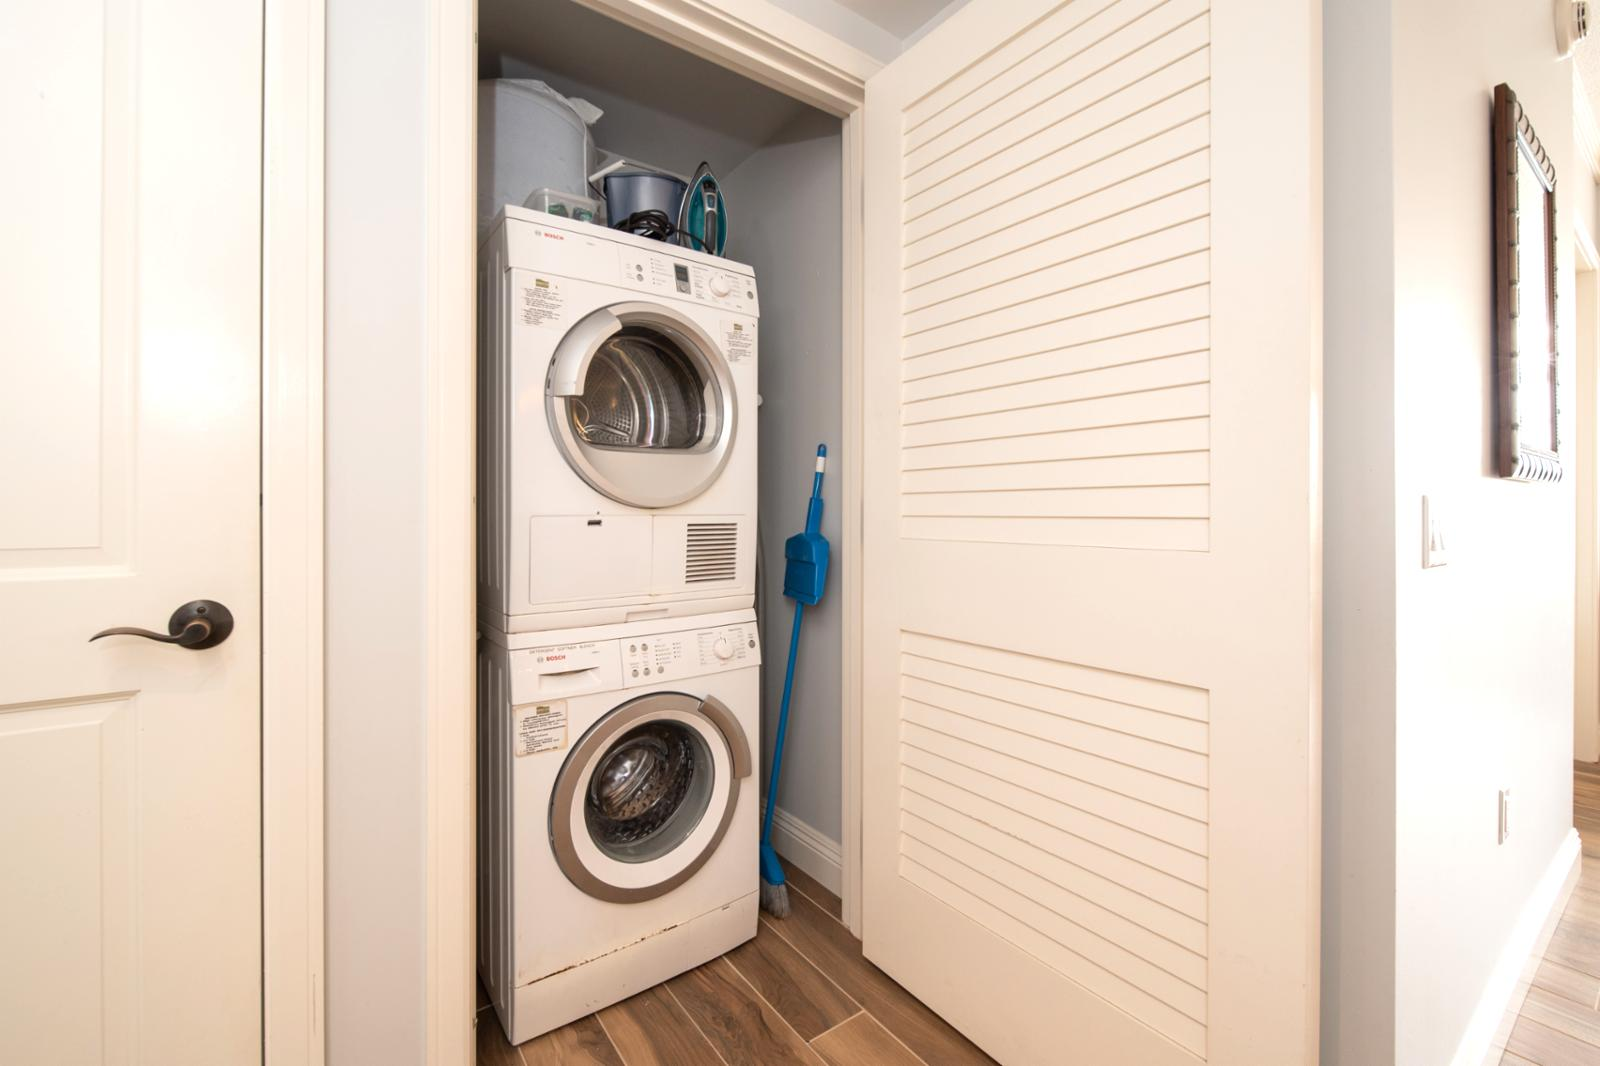 BOSCH stackable washer and dryer, ready for your use